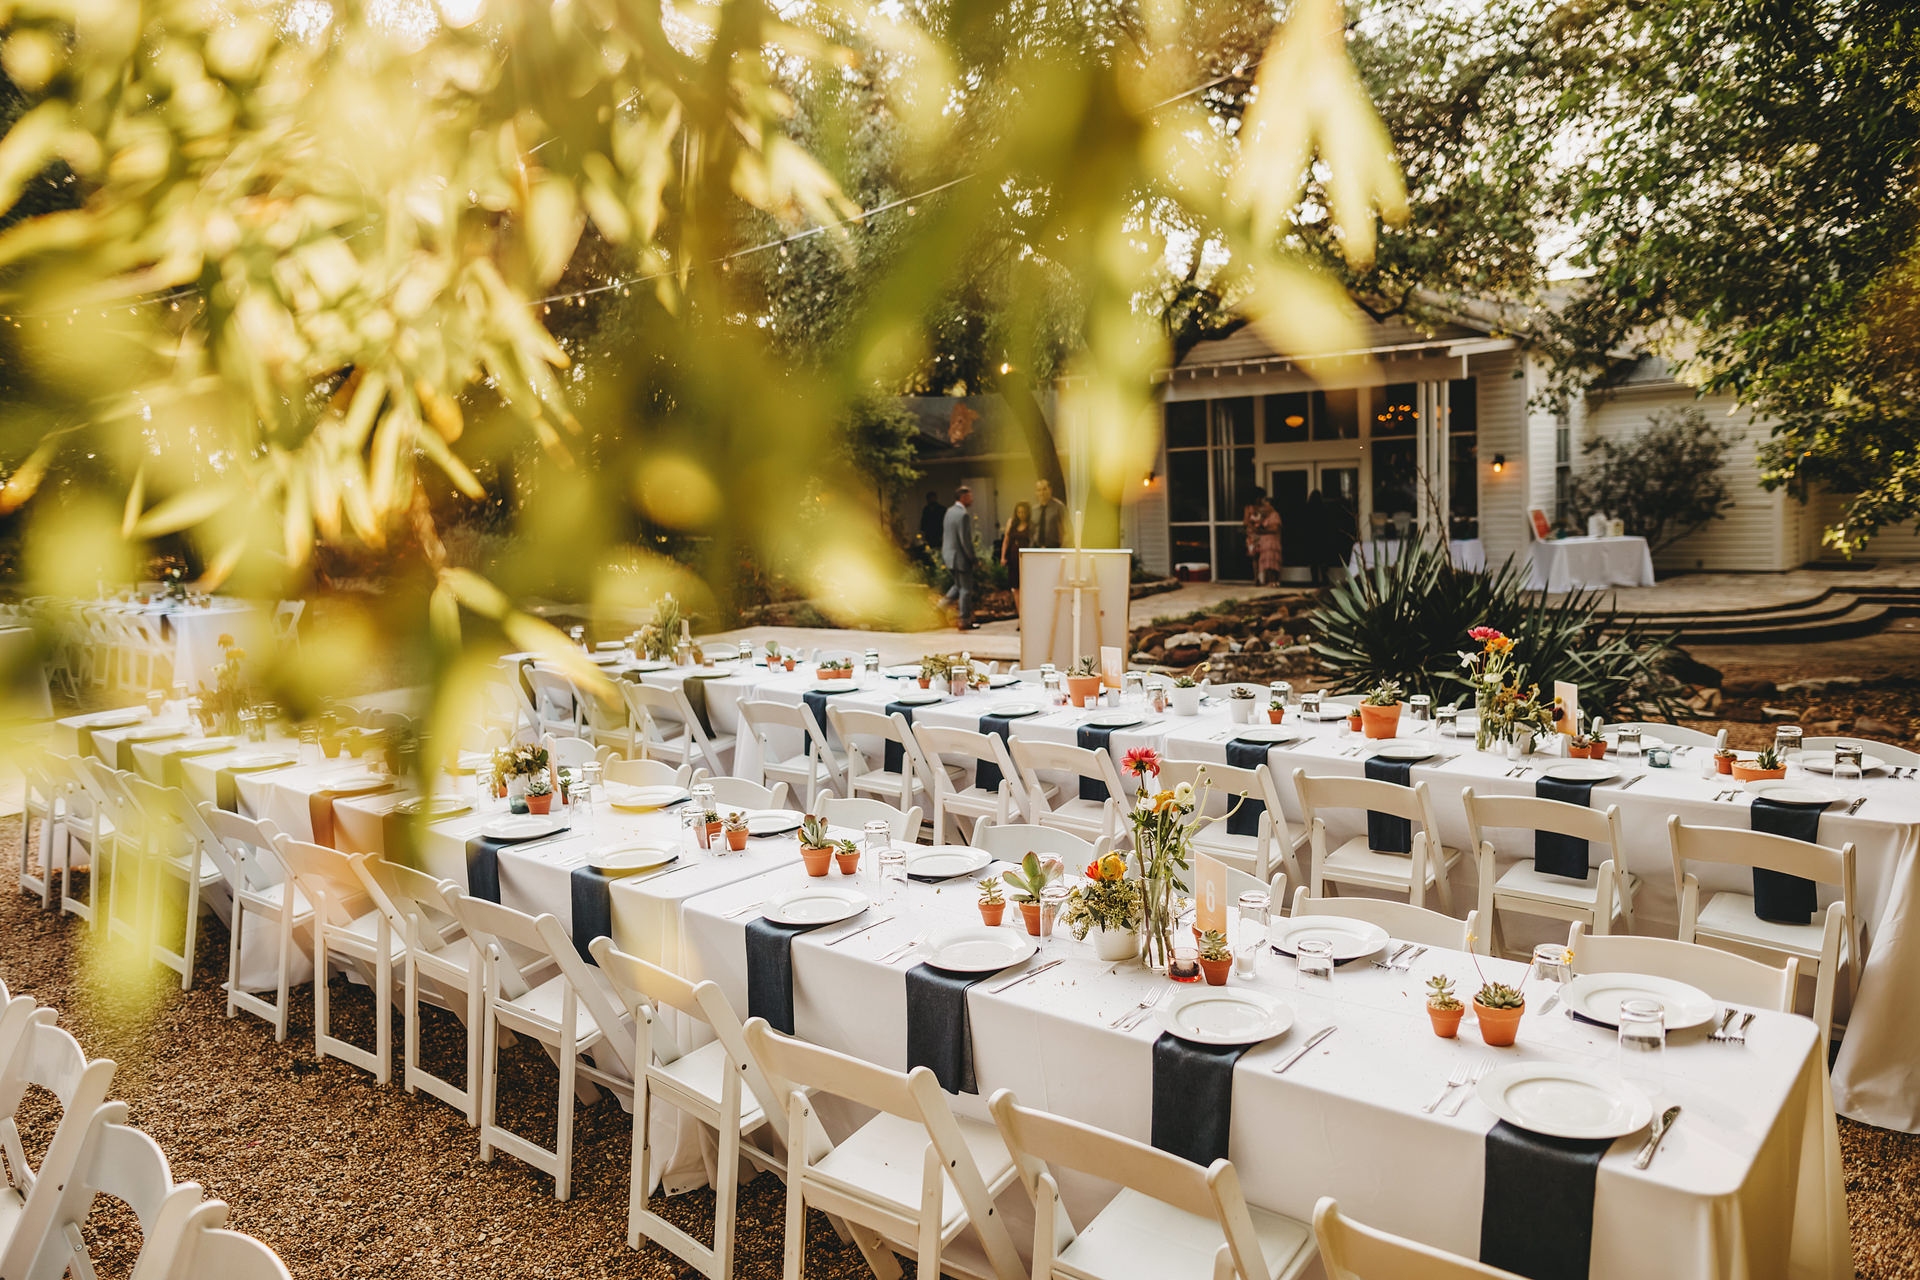 Reception Banquet Seating in Courtyard w Wall of Windows 2 copy.jpg